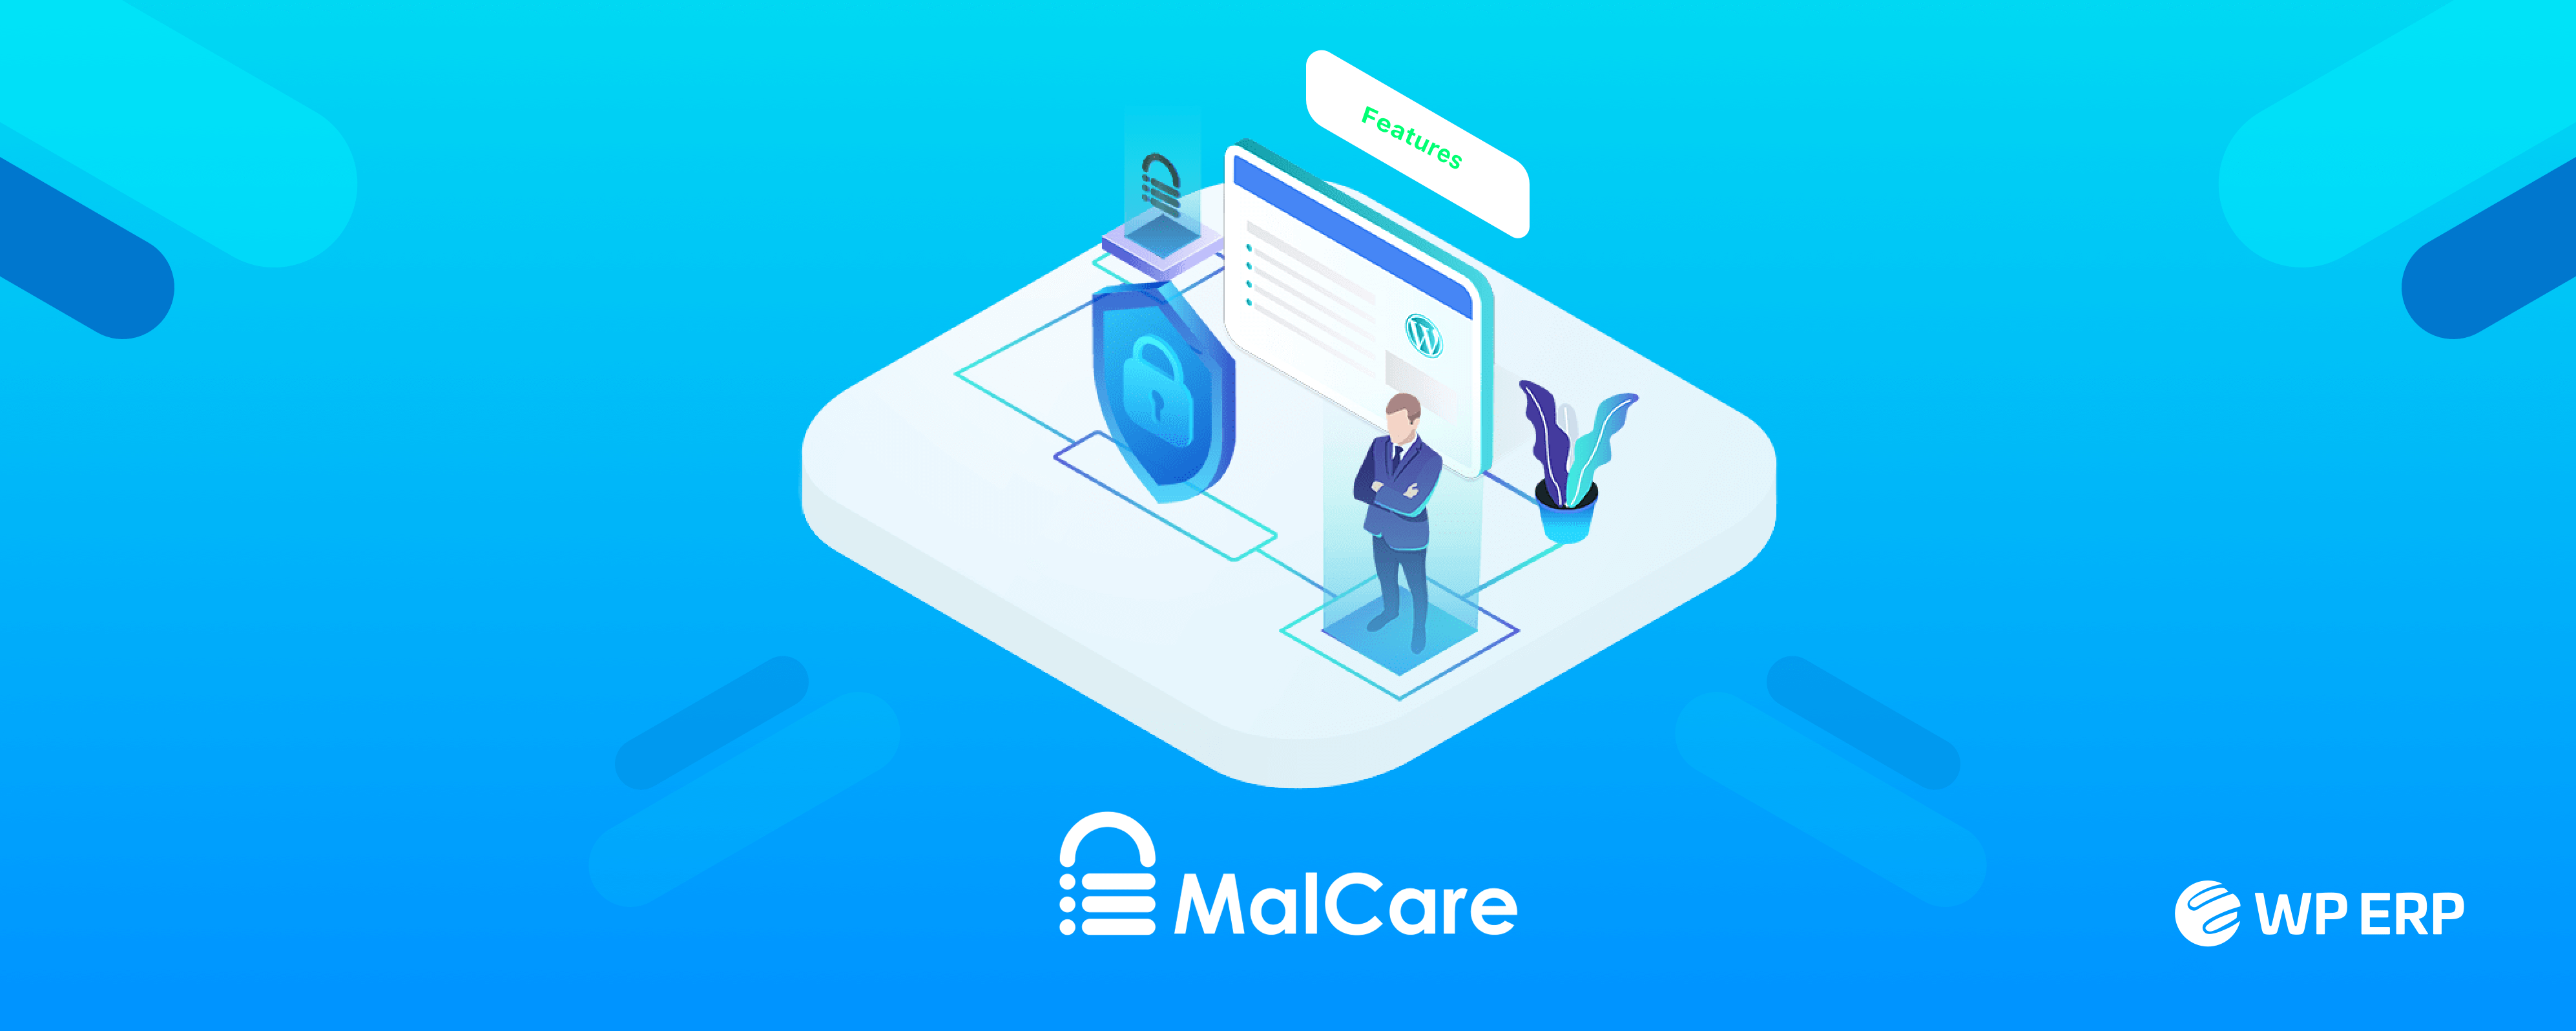 Malcare features